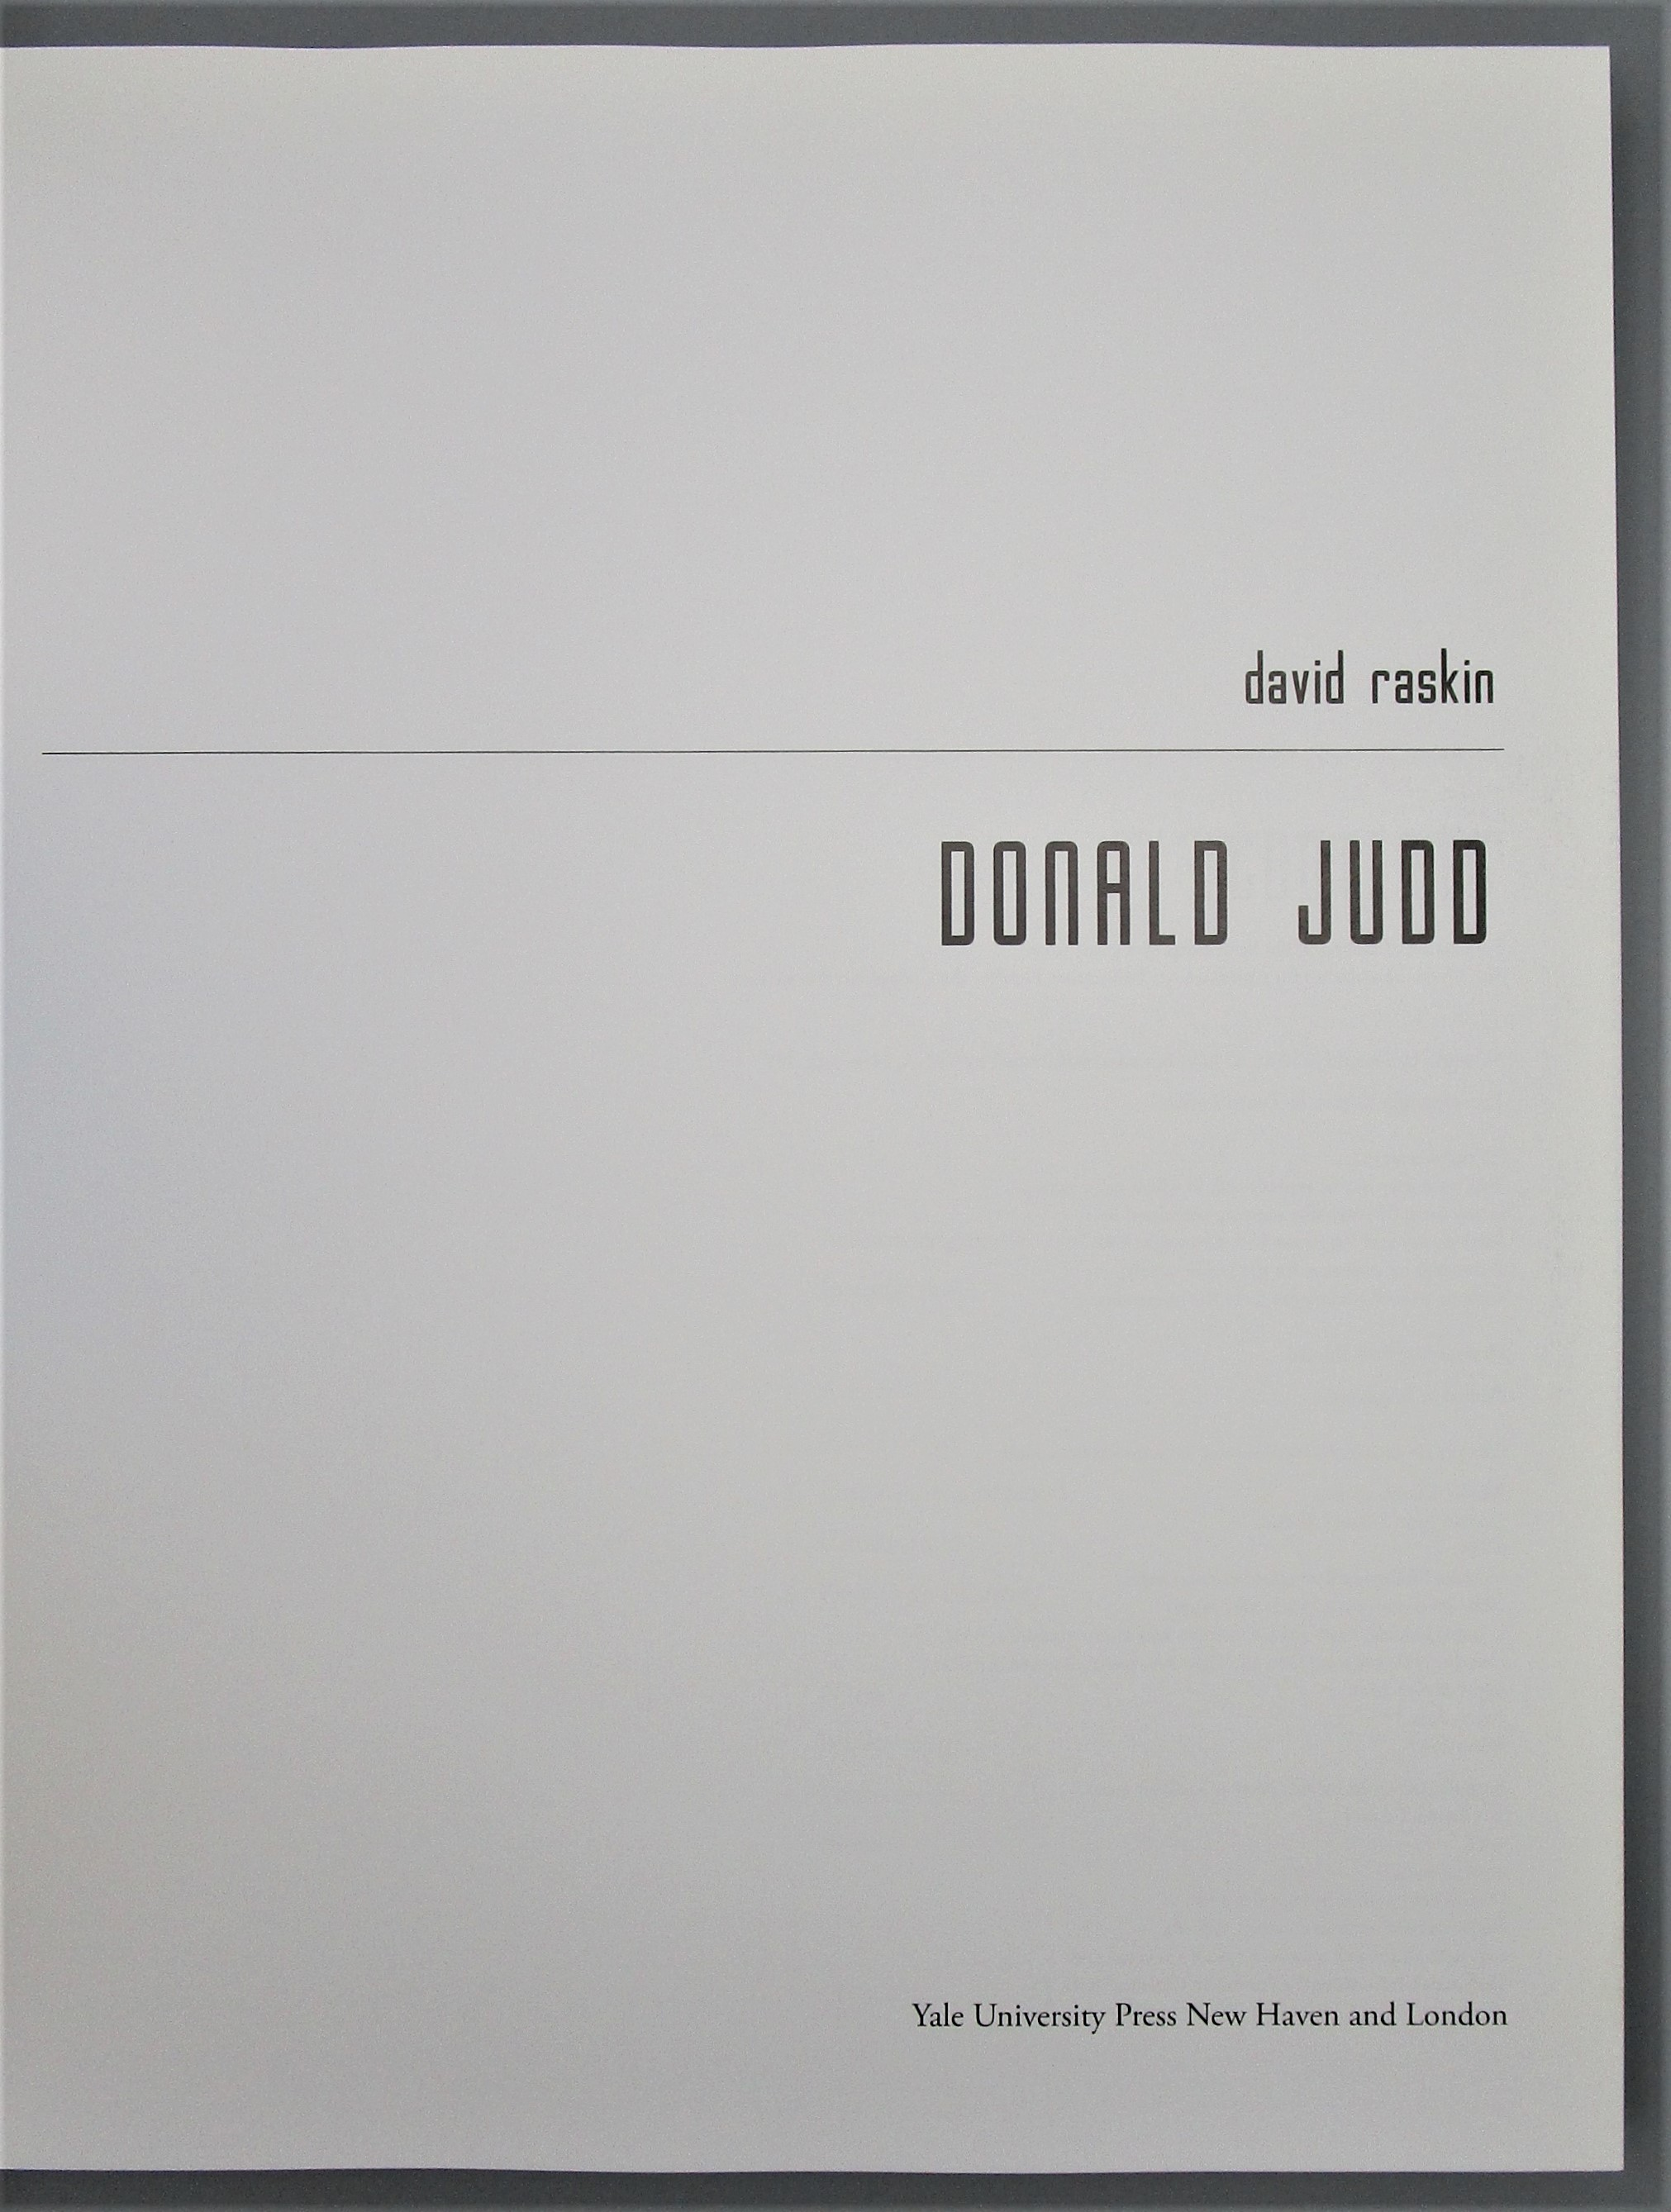 DONALD JUDD, by David Raskin - 2010